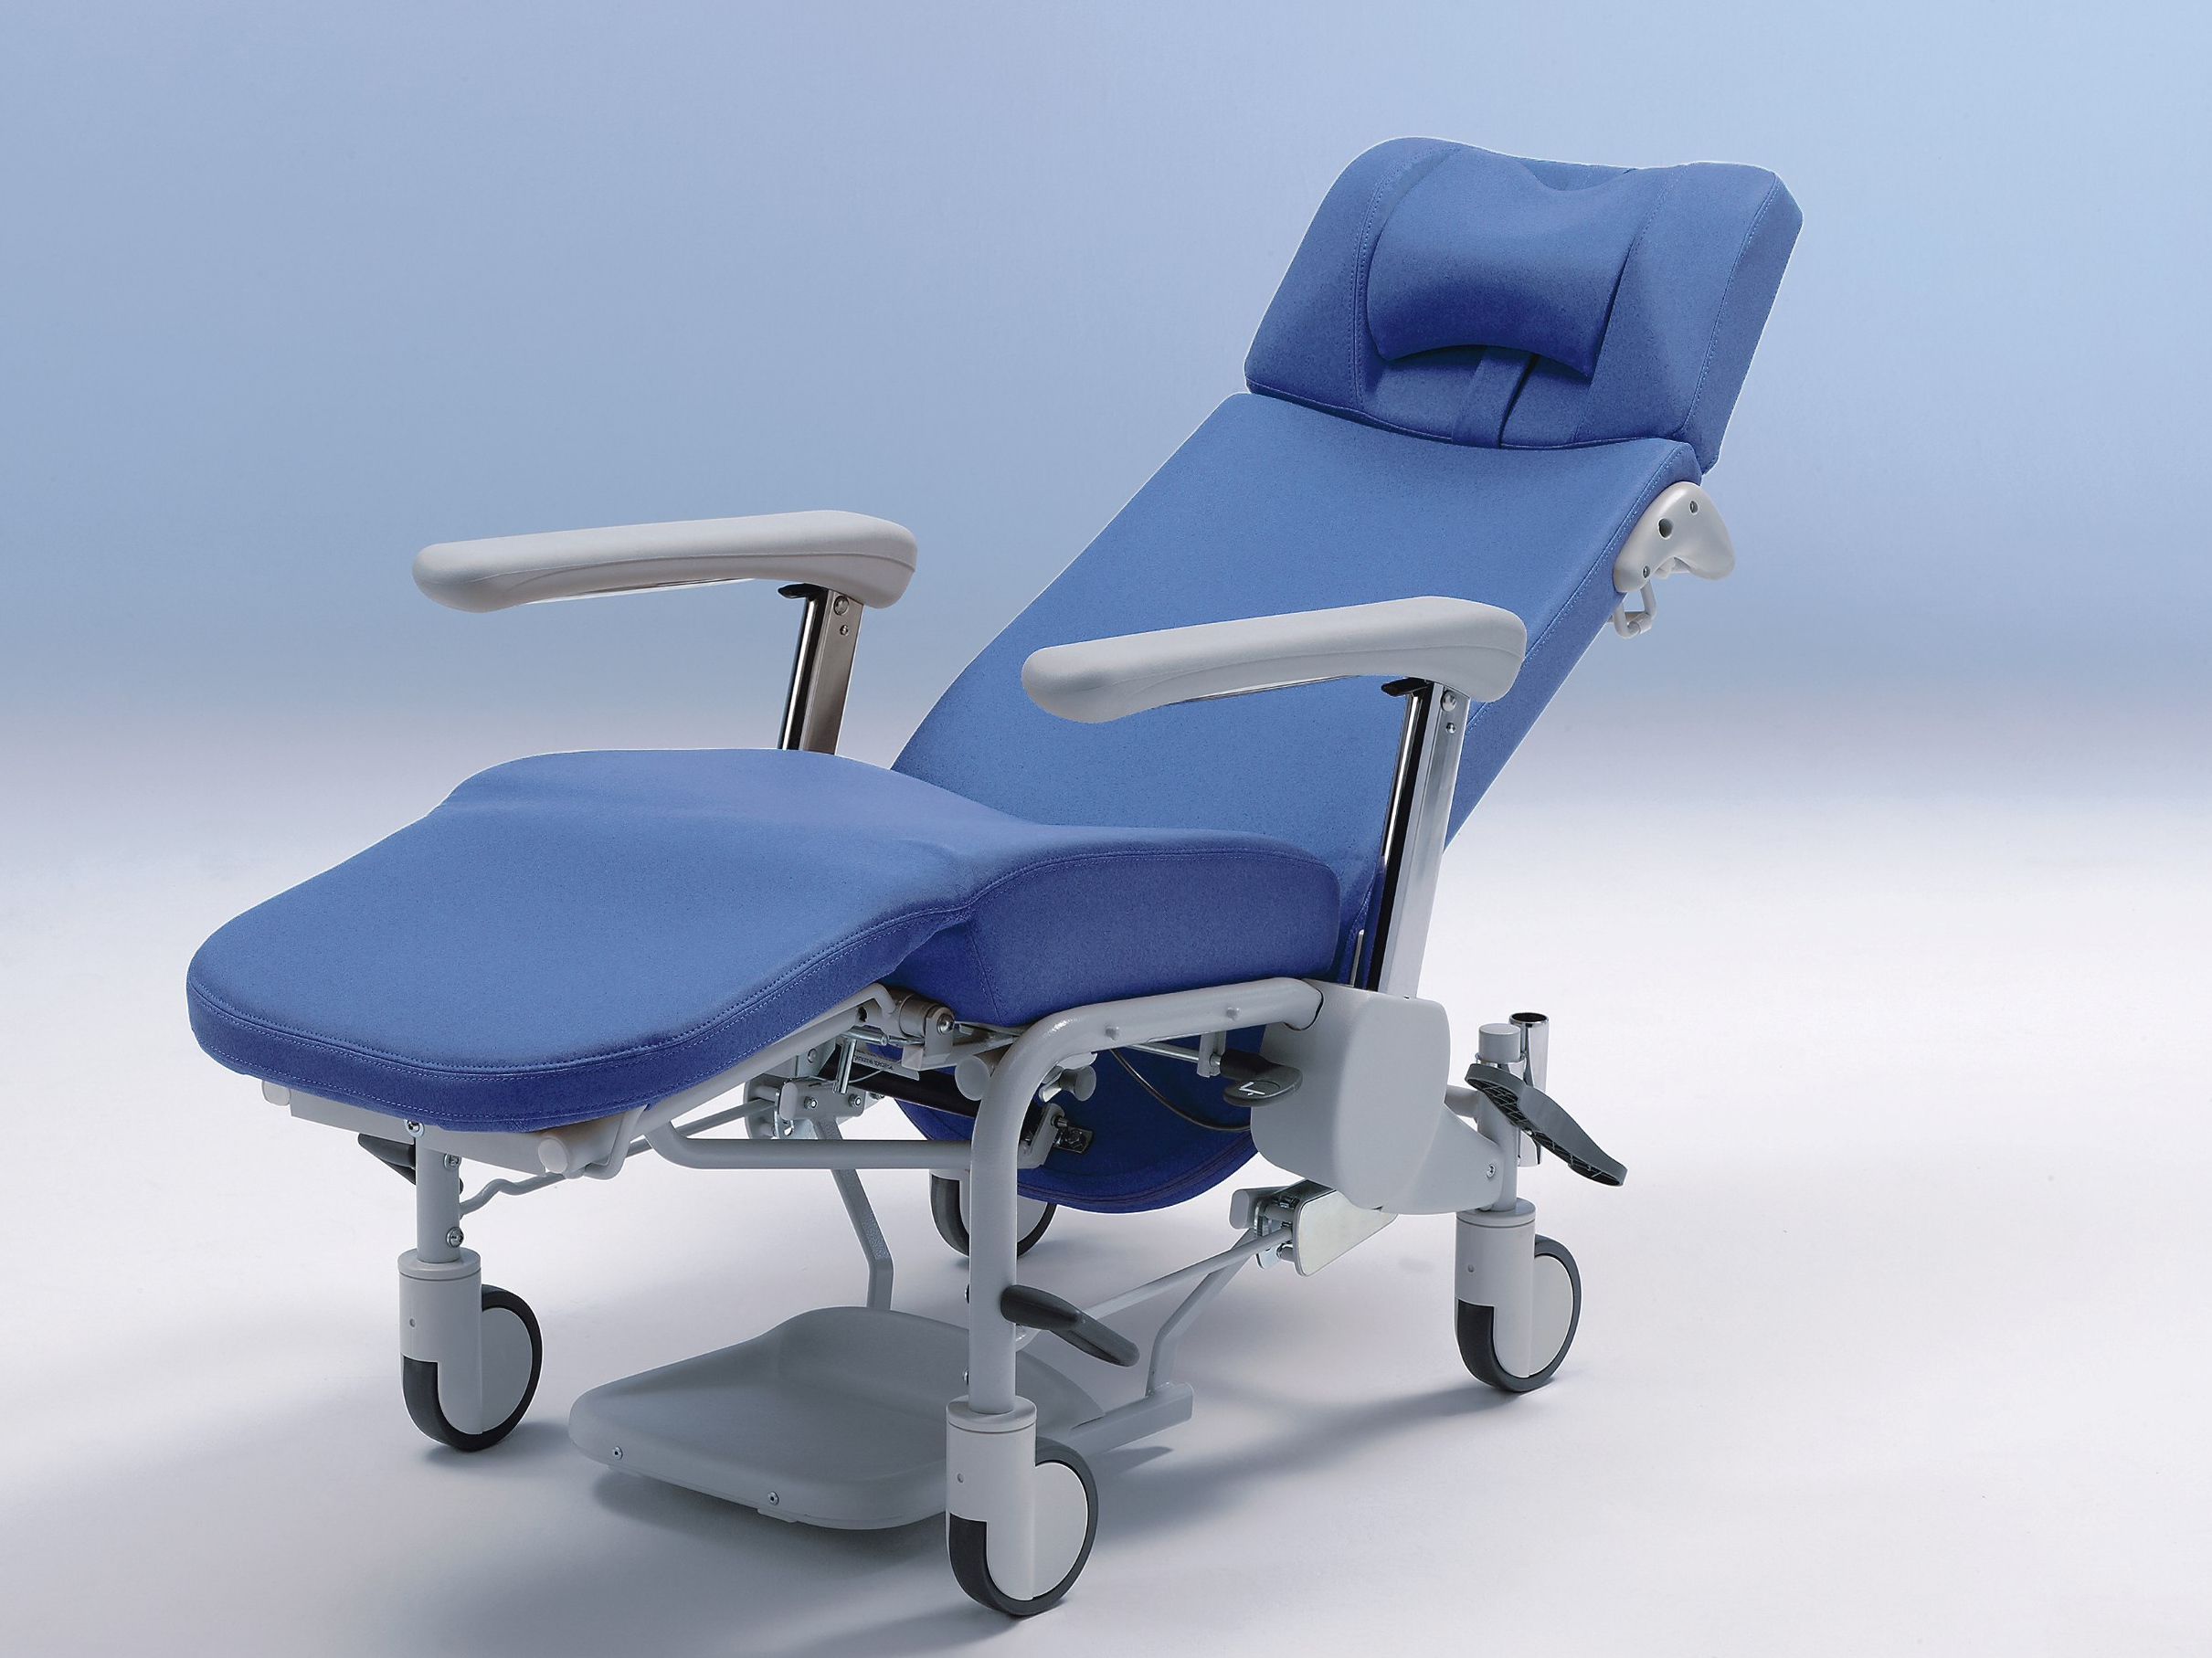 The Ravello care chair offers a comfortable reclining position